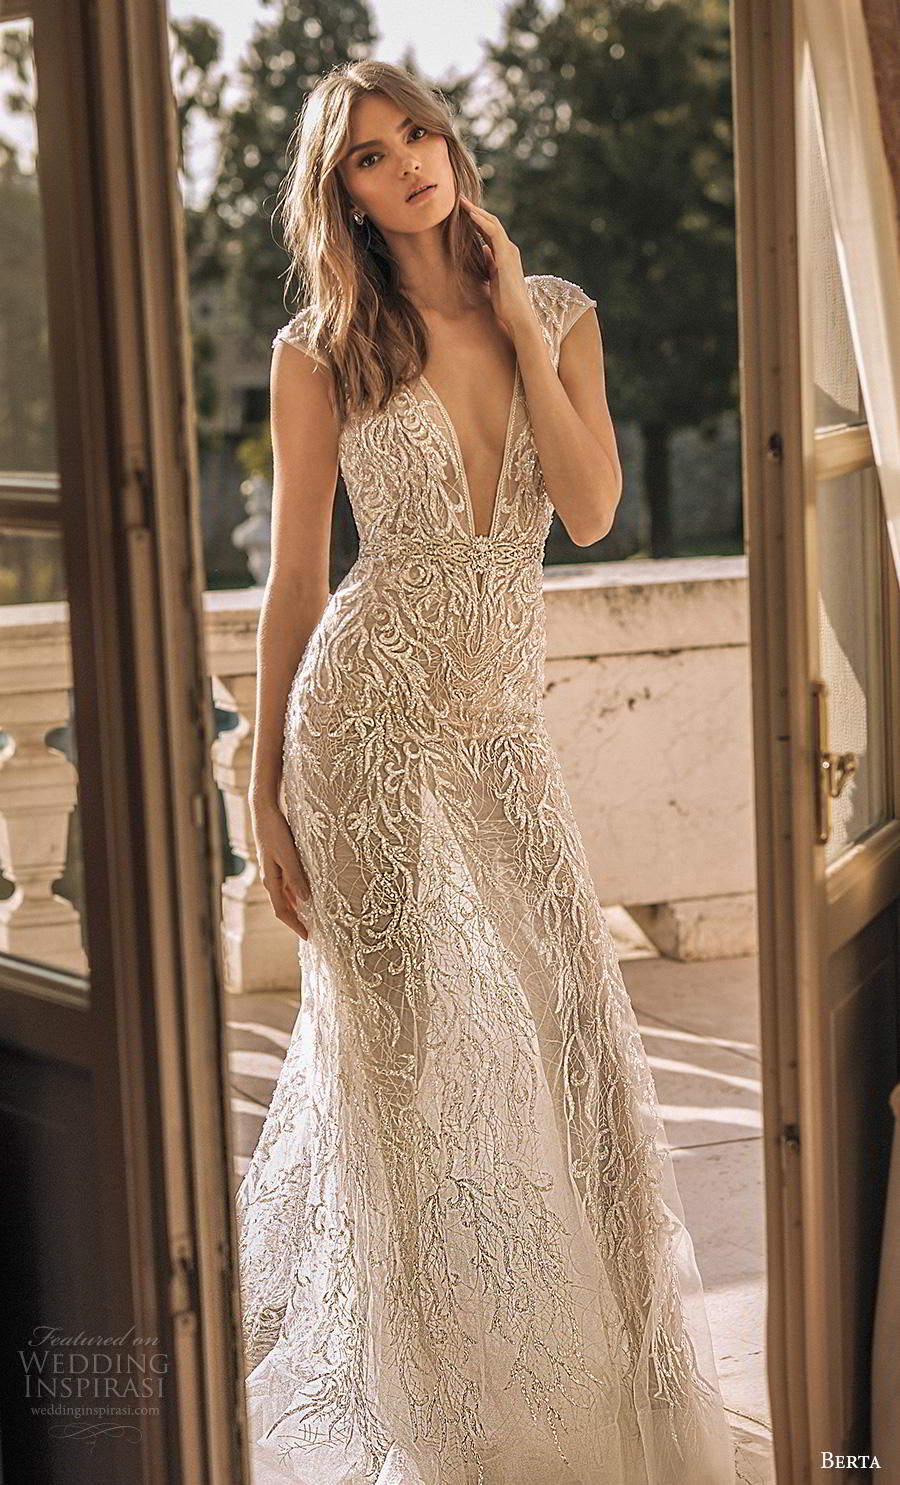 berta 2019 privee bridal cap sleeves deep v neck full embellishment sexy glamorous modified a  line wedding dress low open back backless chapel train (7) mv